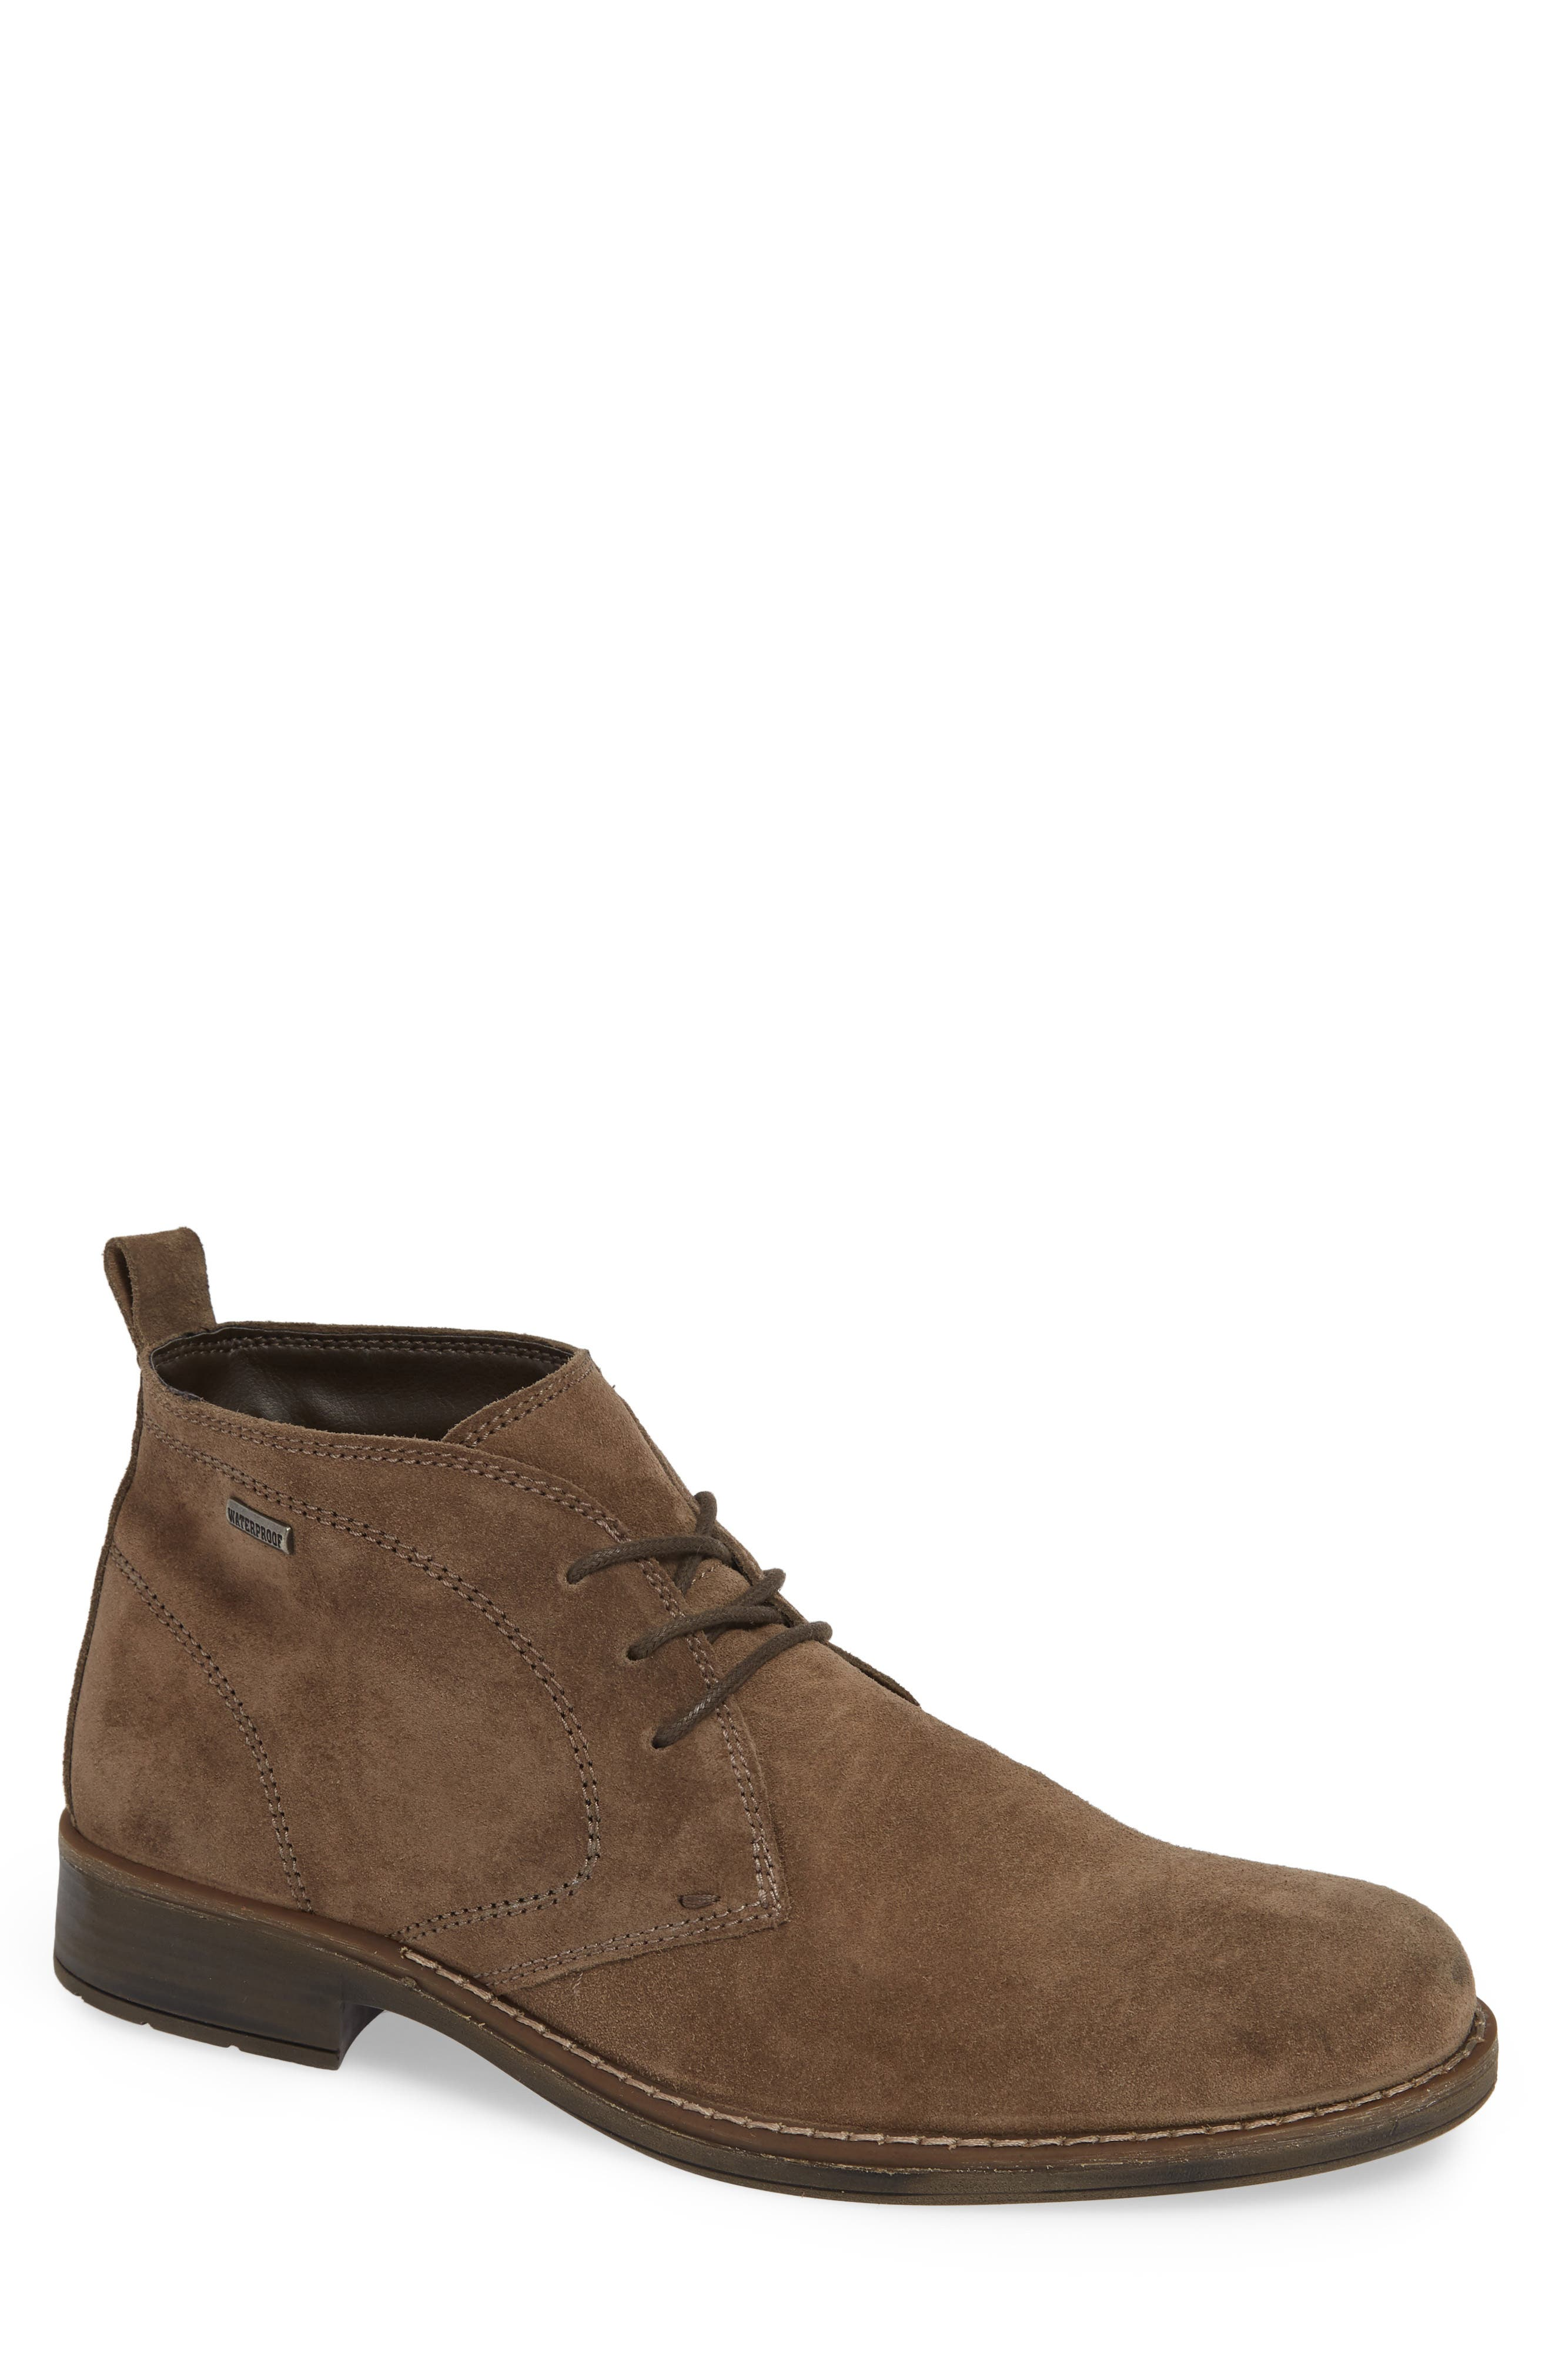 Stevens Waterproof Chukka Boot,                             Main thumbnail 1, color,                             TAUPE SUEDE